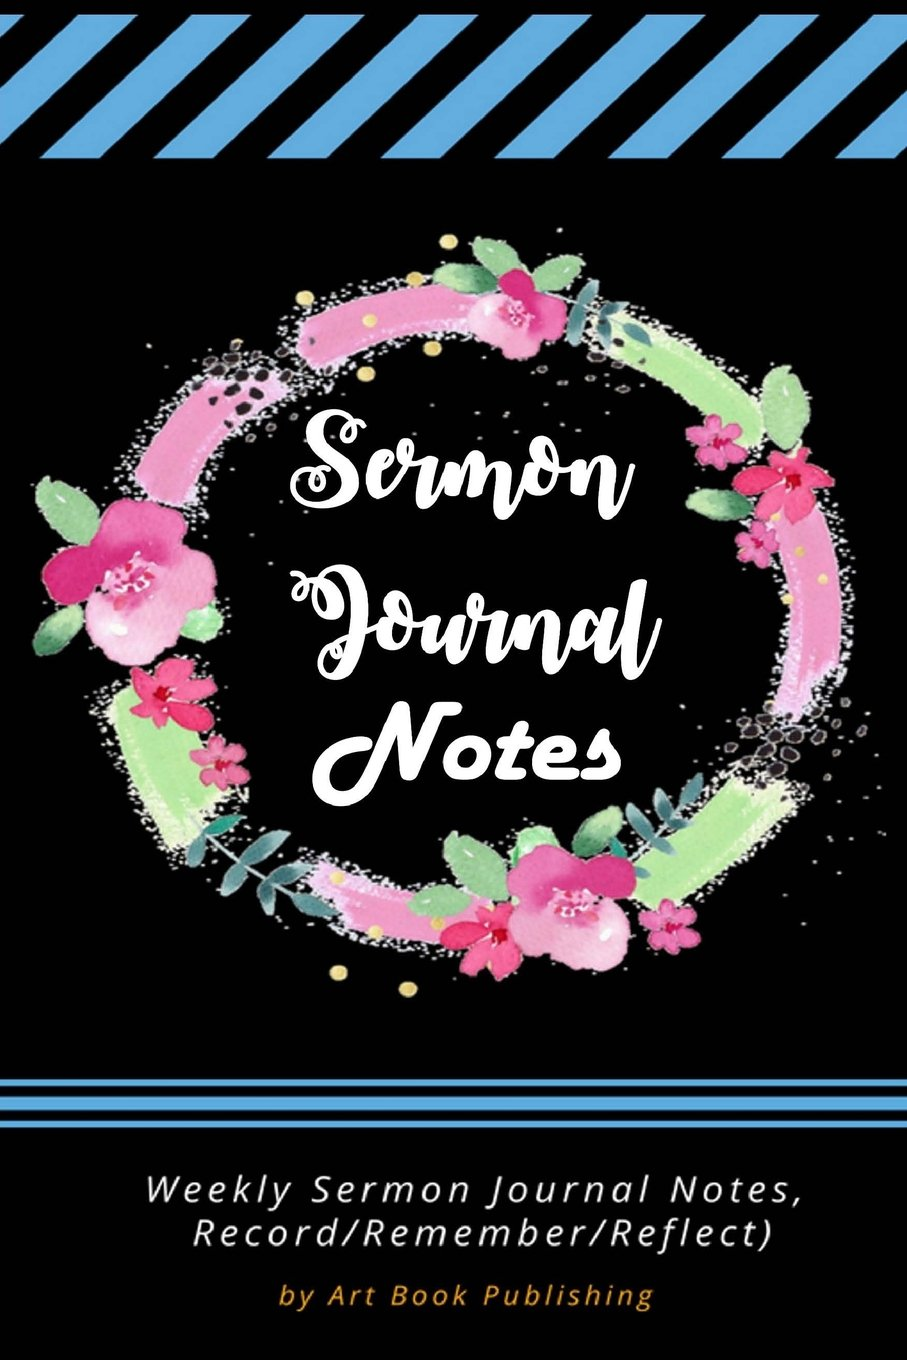 Sermon Journal Notes: Weekly Sermon Journal Notes, Easy to